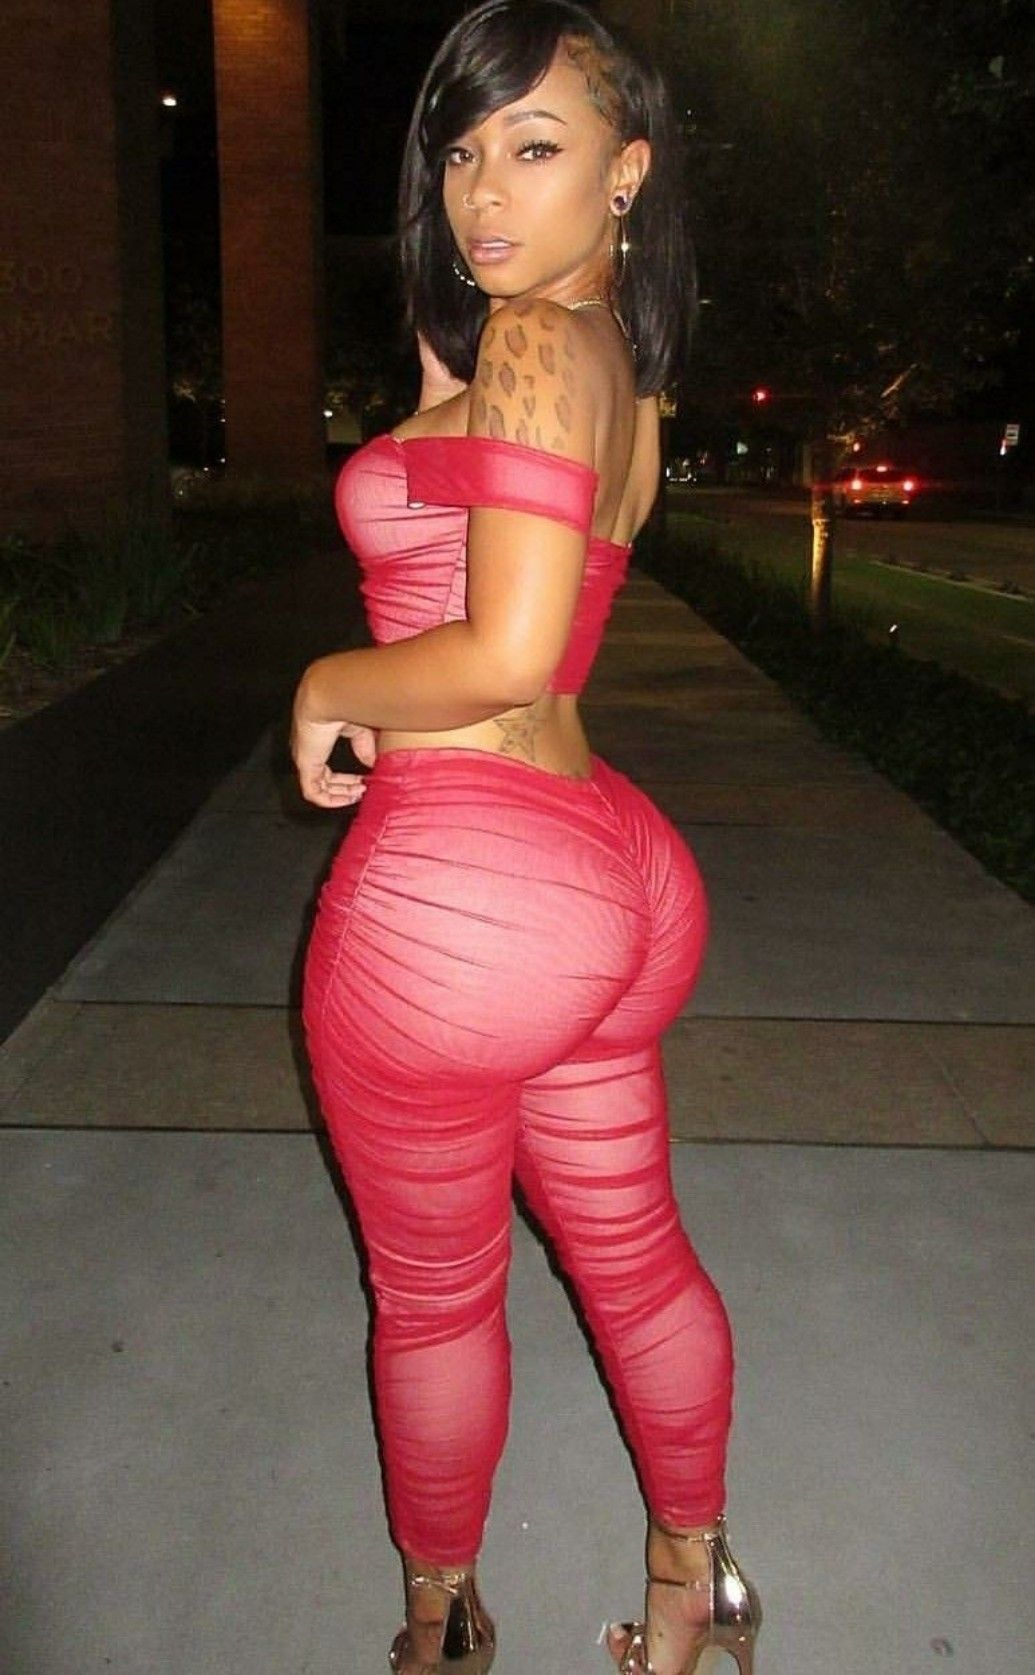 i'm loving her big azz | nice ass | pinterest | big, curvy and nice